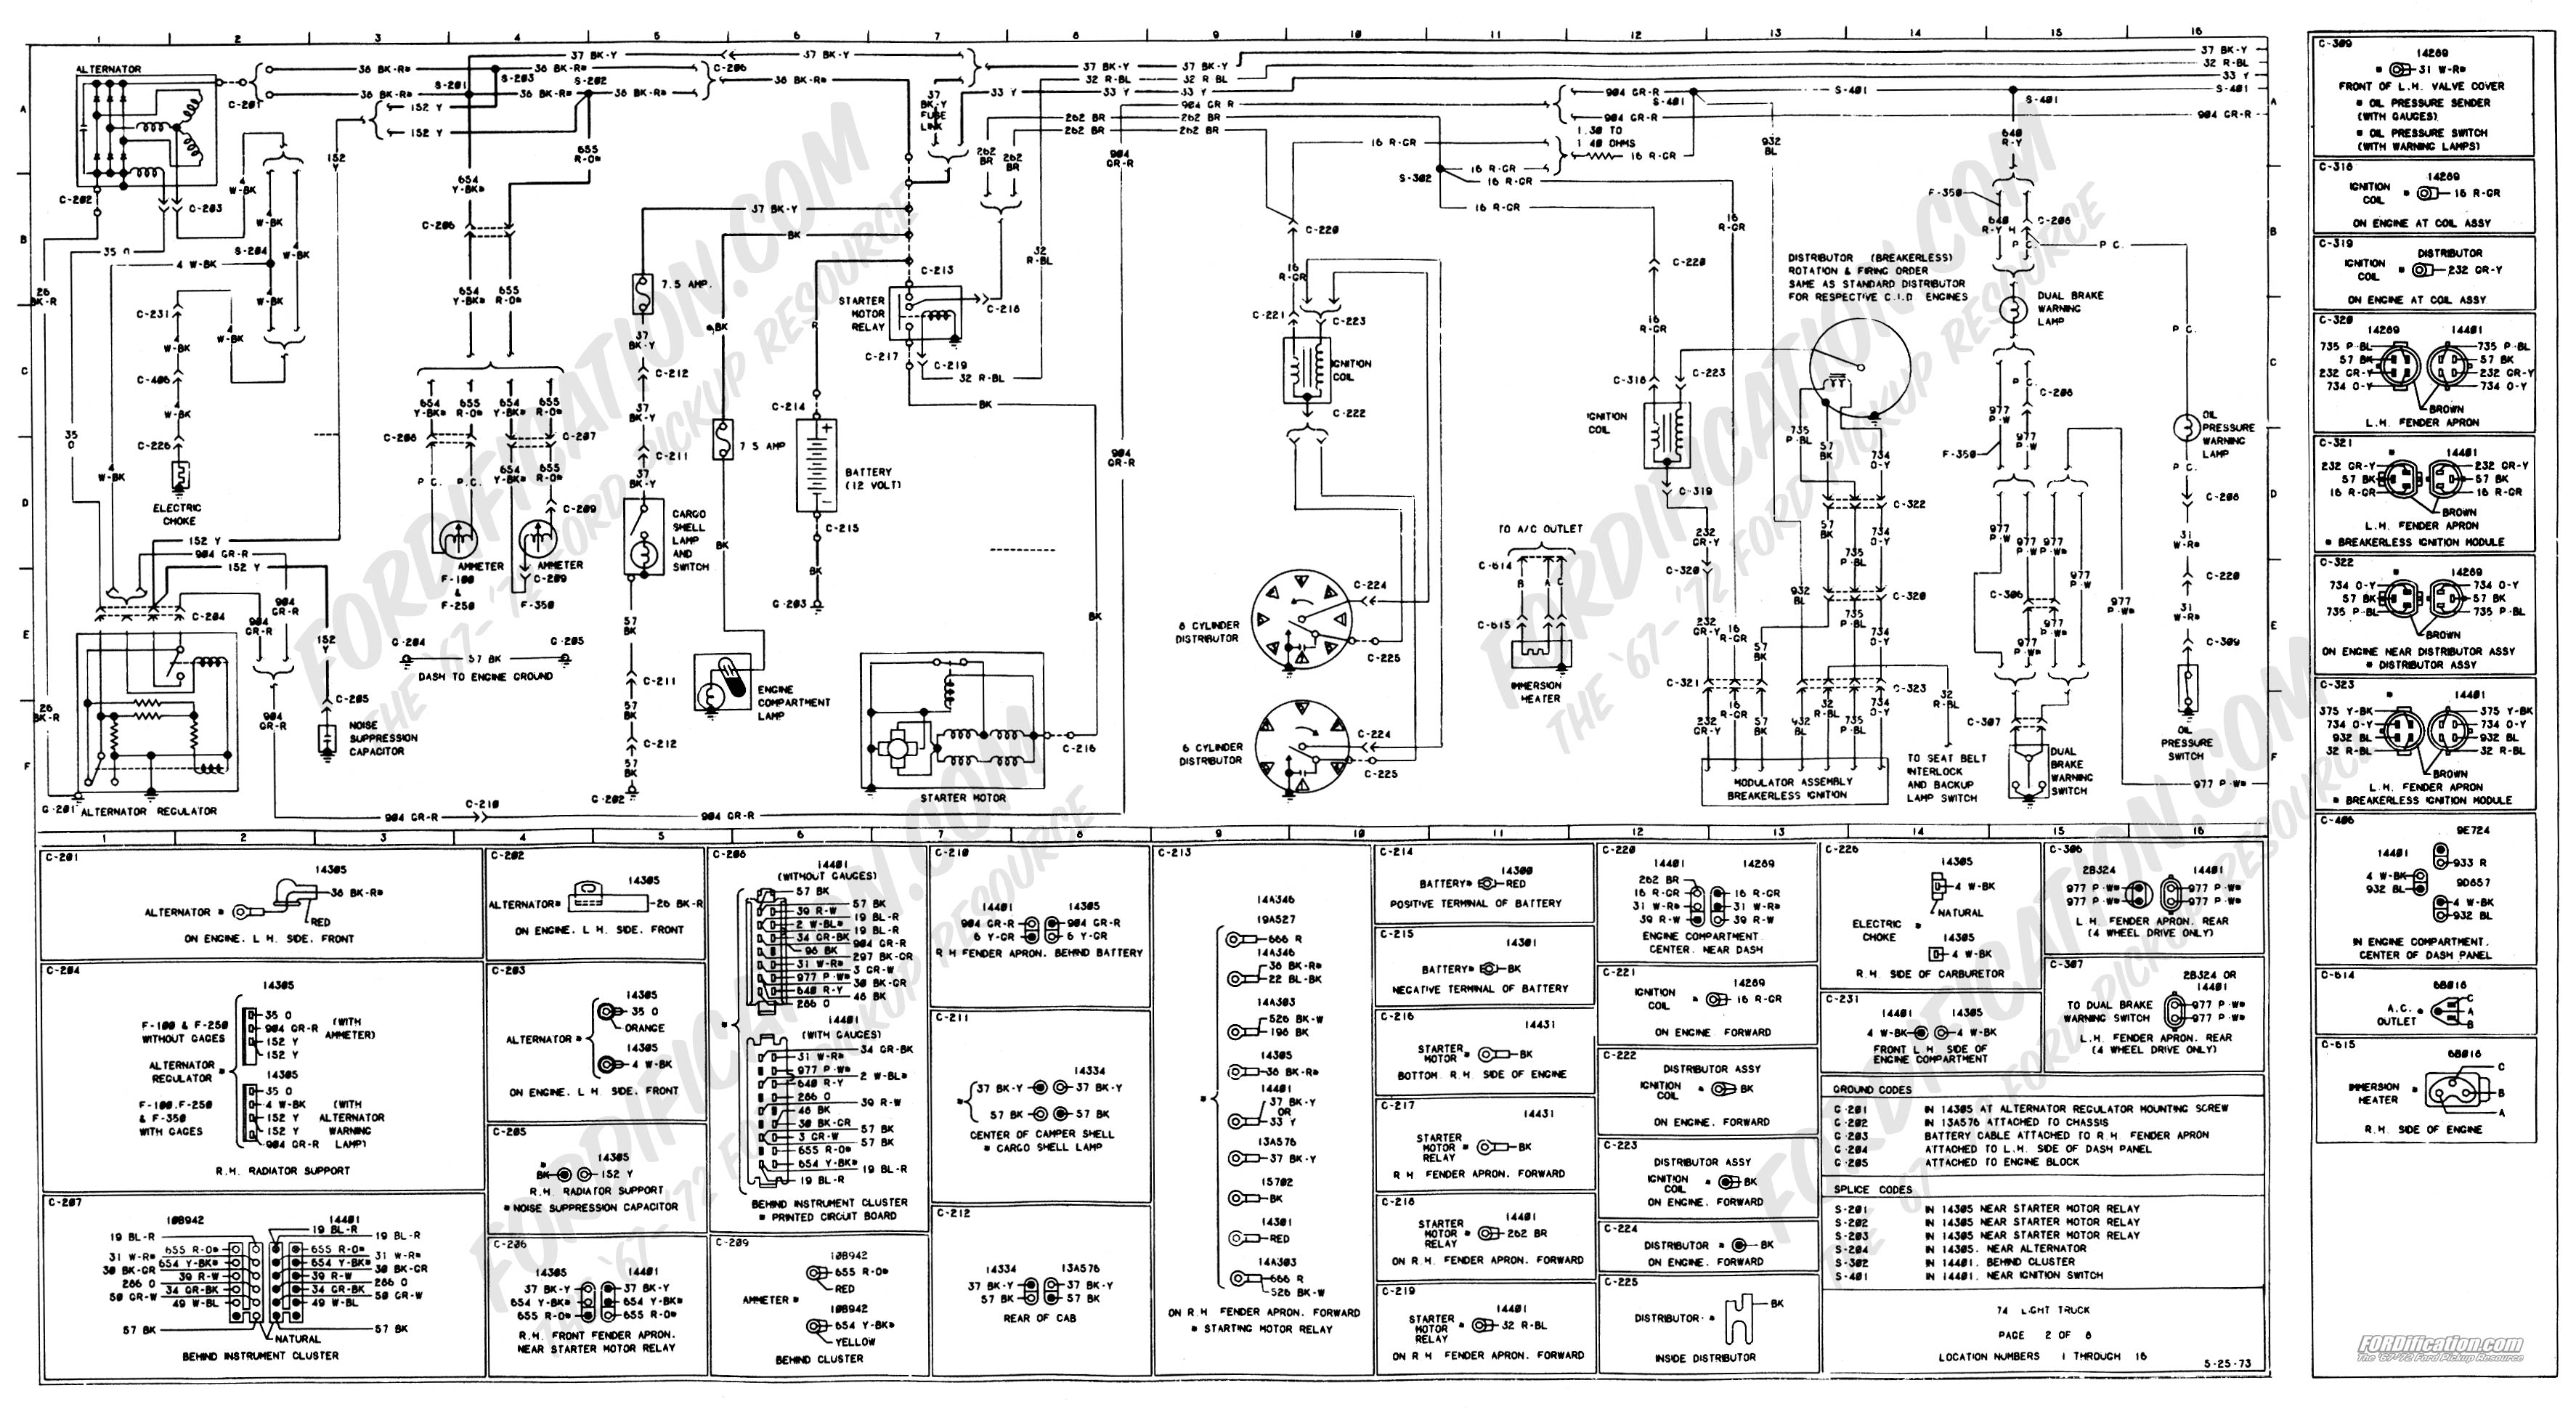 1978 f250 wiring diagram private sharing about wiring diagram u2022 rh caraccessoriesandsoftware co uk